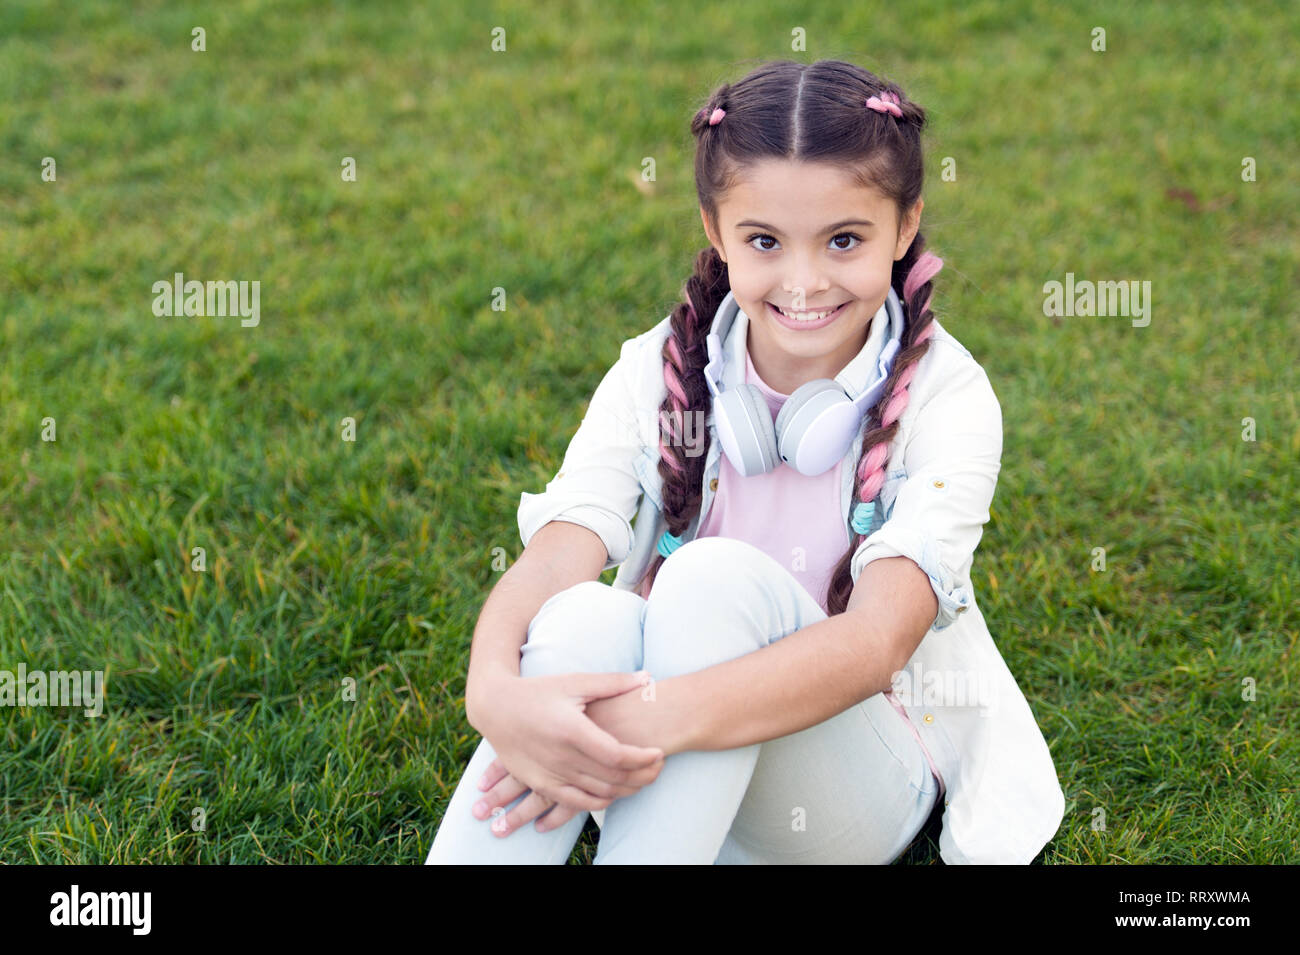 Girl braids hairstyle and modern headphones enjoy relax. Secrets to raising happy child. Girl cute kid green grass background. Healthy emotional happy kid relaxing outdoors. Get happy yourself. - Stock Image